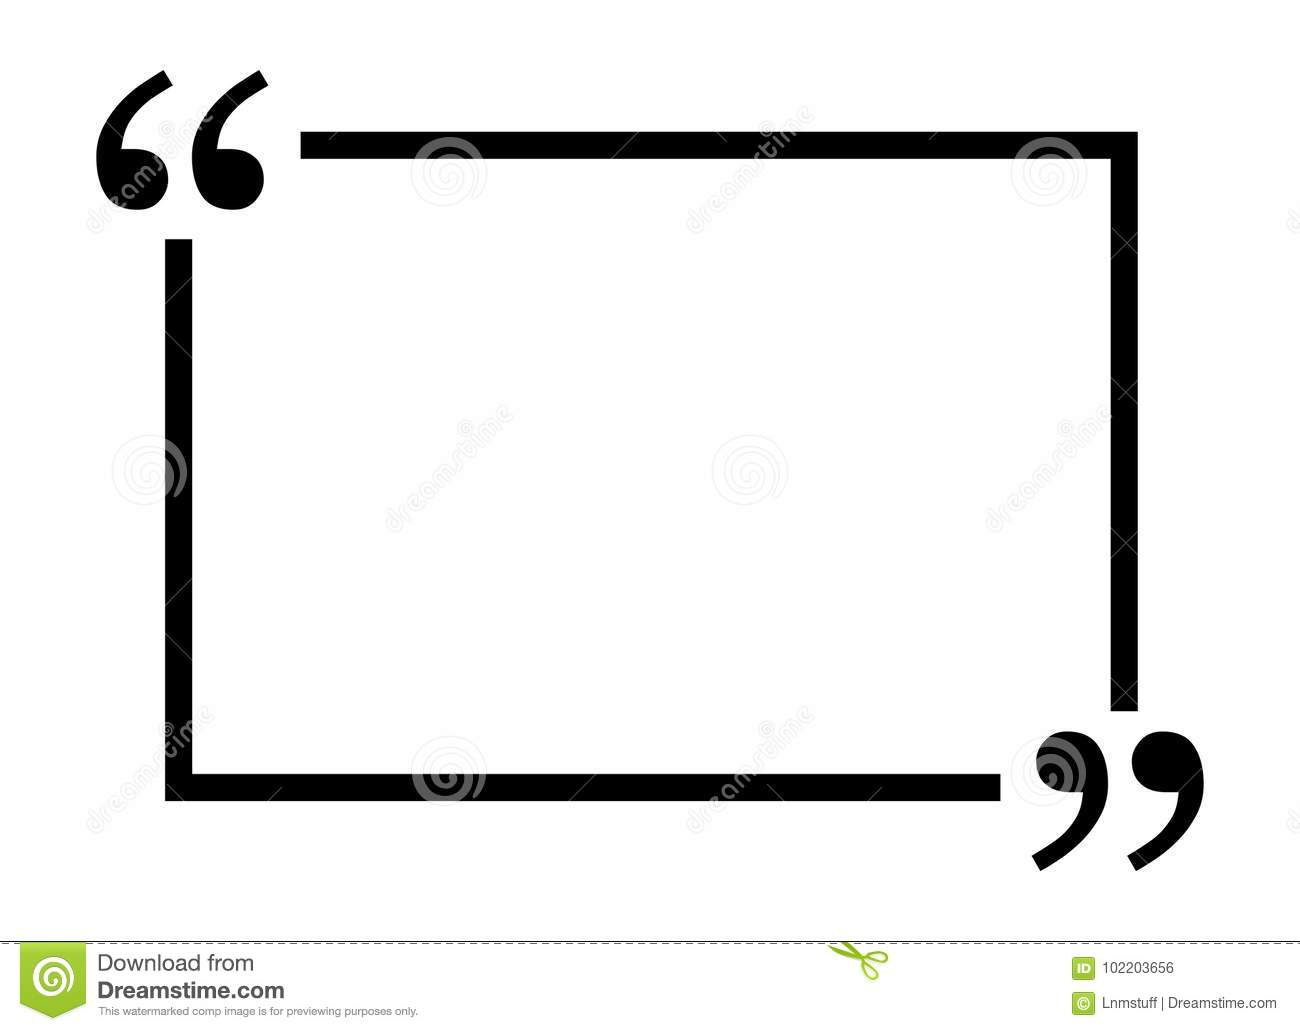 Quotes frame stock vector. Illustration of form, definition - 102203656